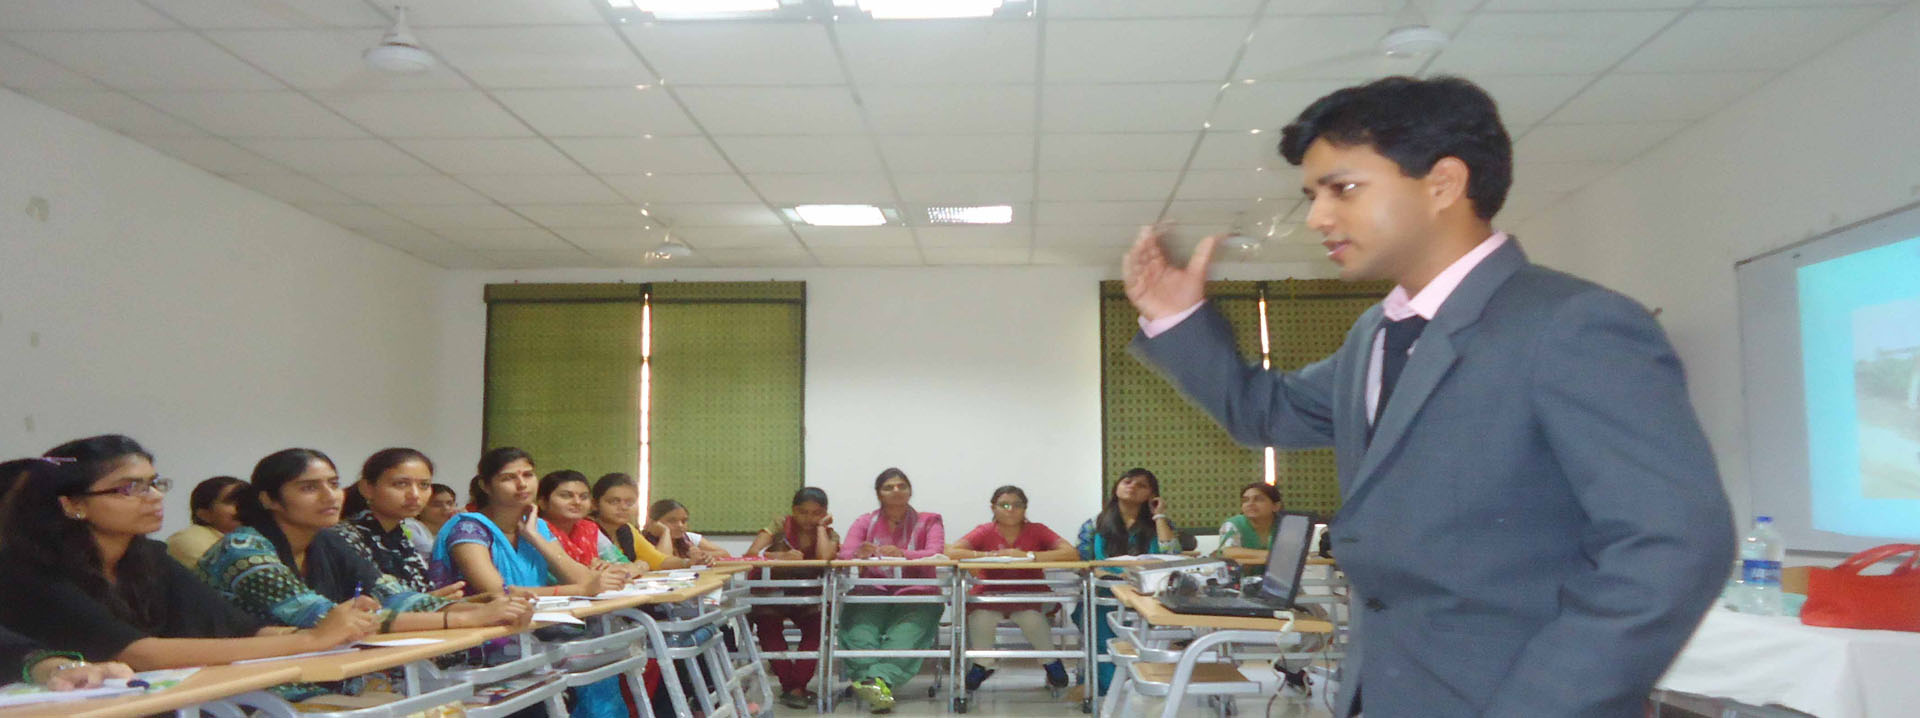 Skill Development Training in Gurgaon, Skill Development Training Programs in Gurgaon, Delhi